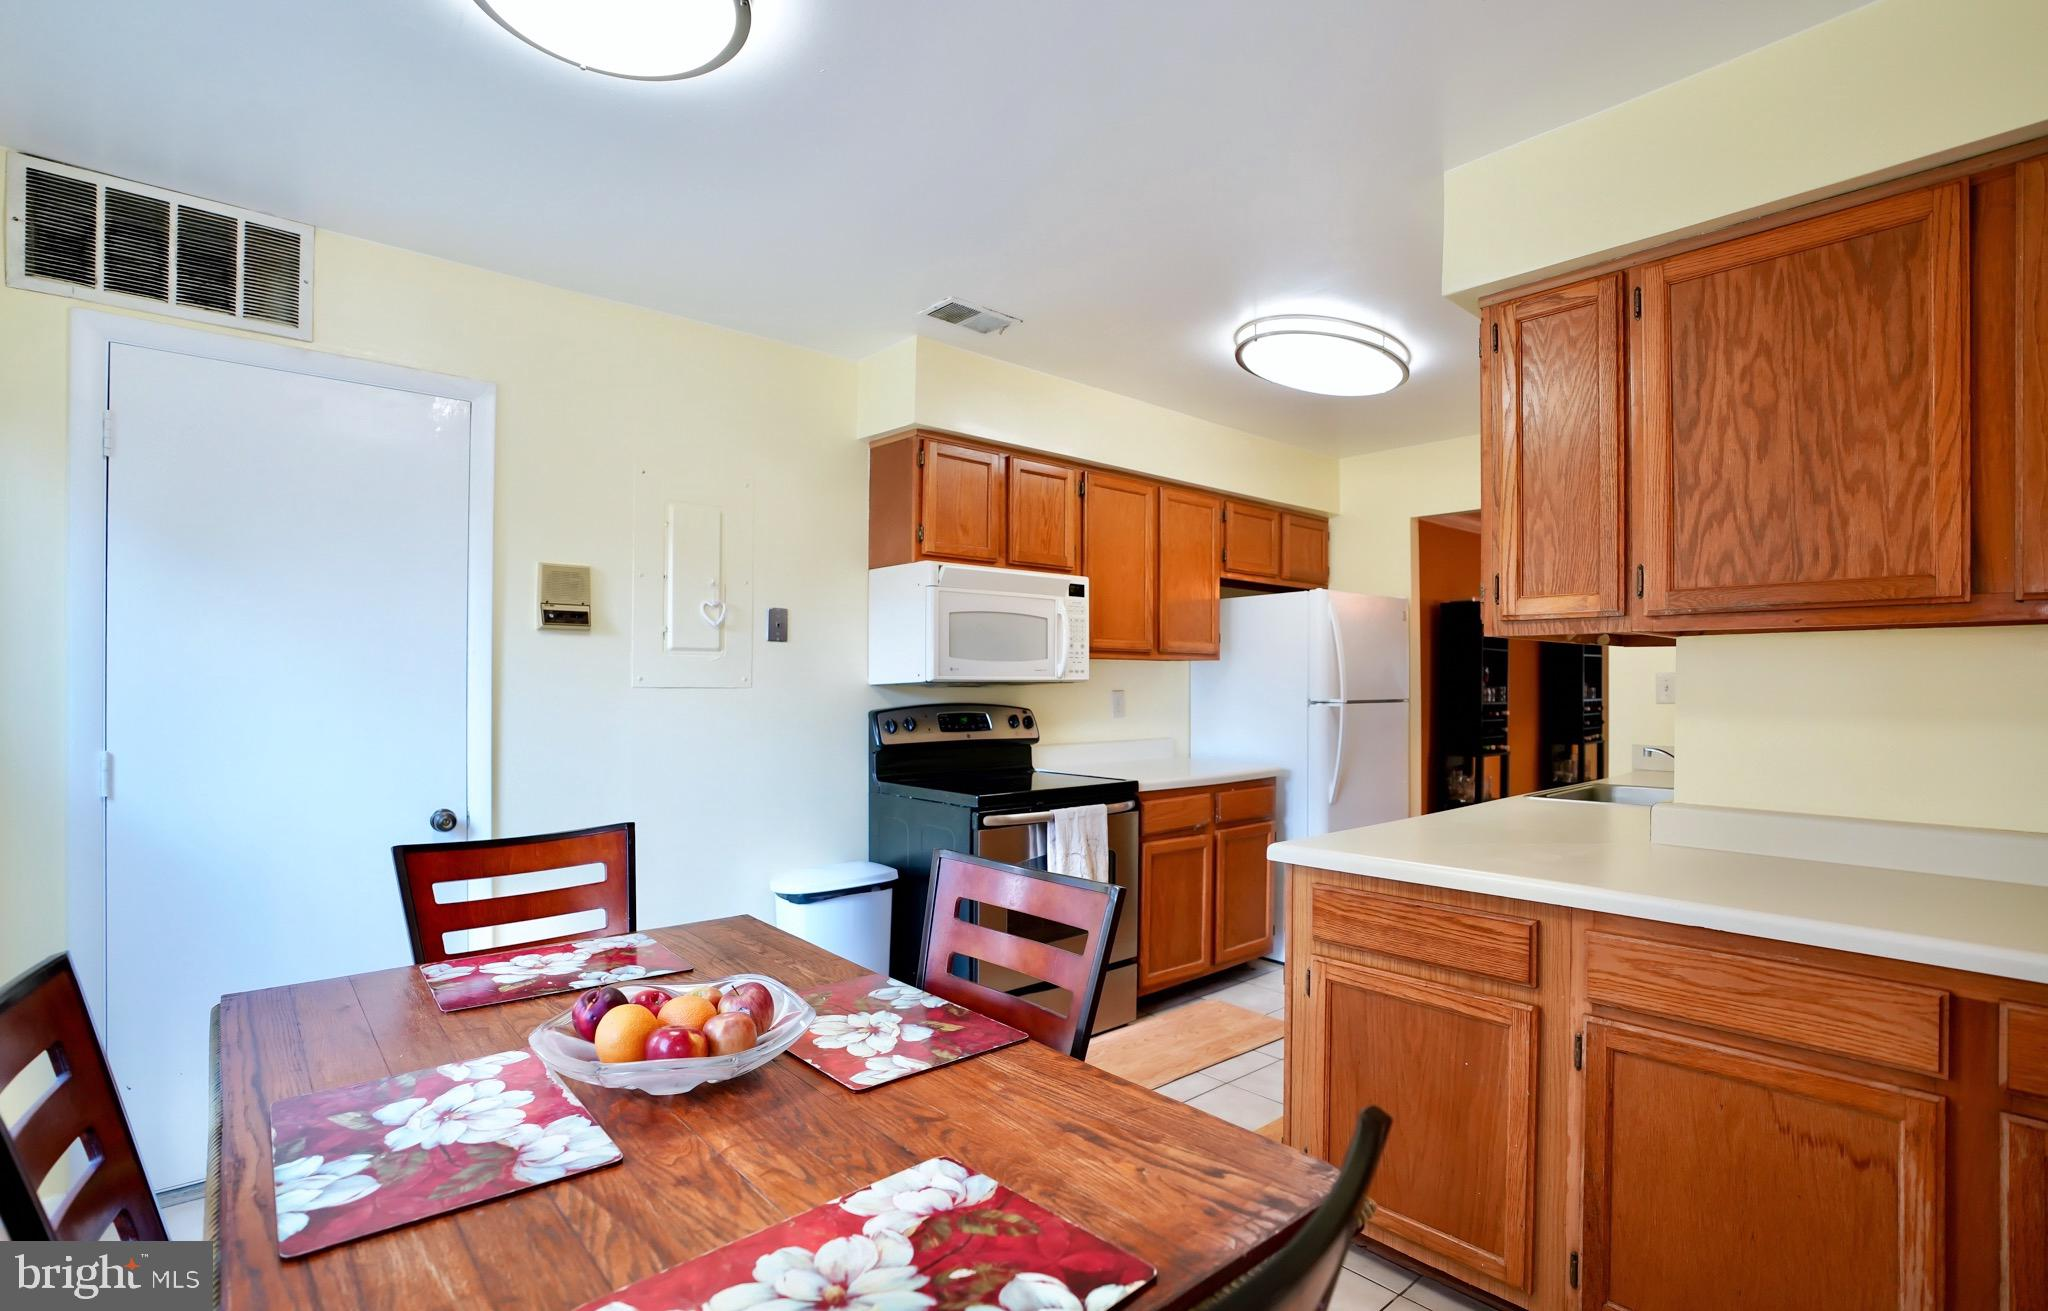 Welcome Home! This Beautiful Lower Level Unit With Open Concept  Provides Immediate Access to the Ou